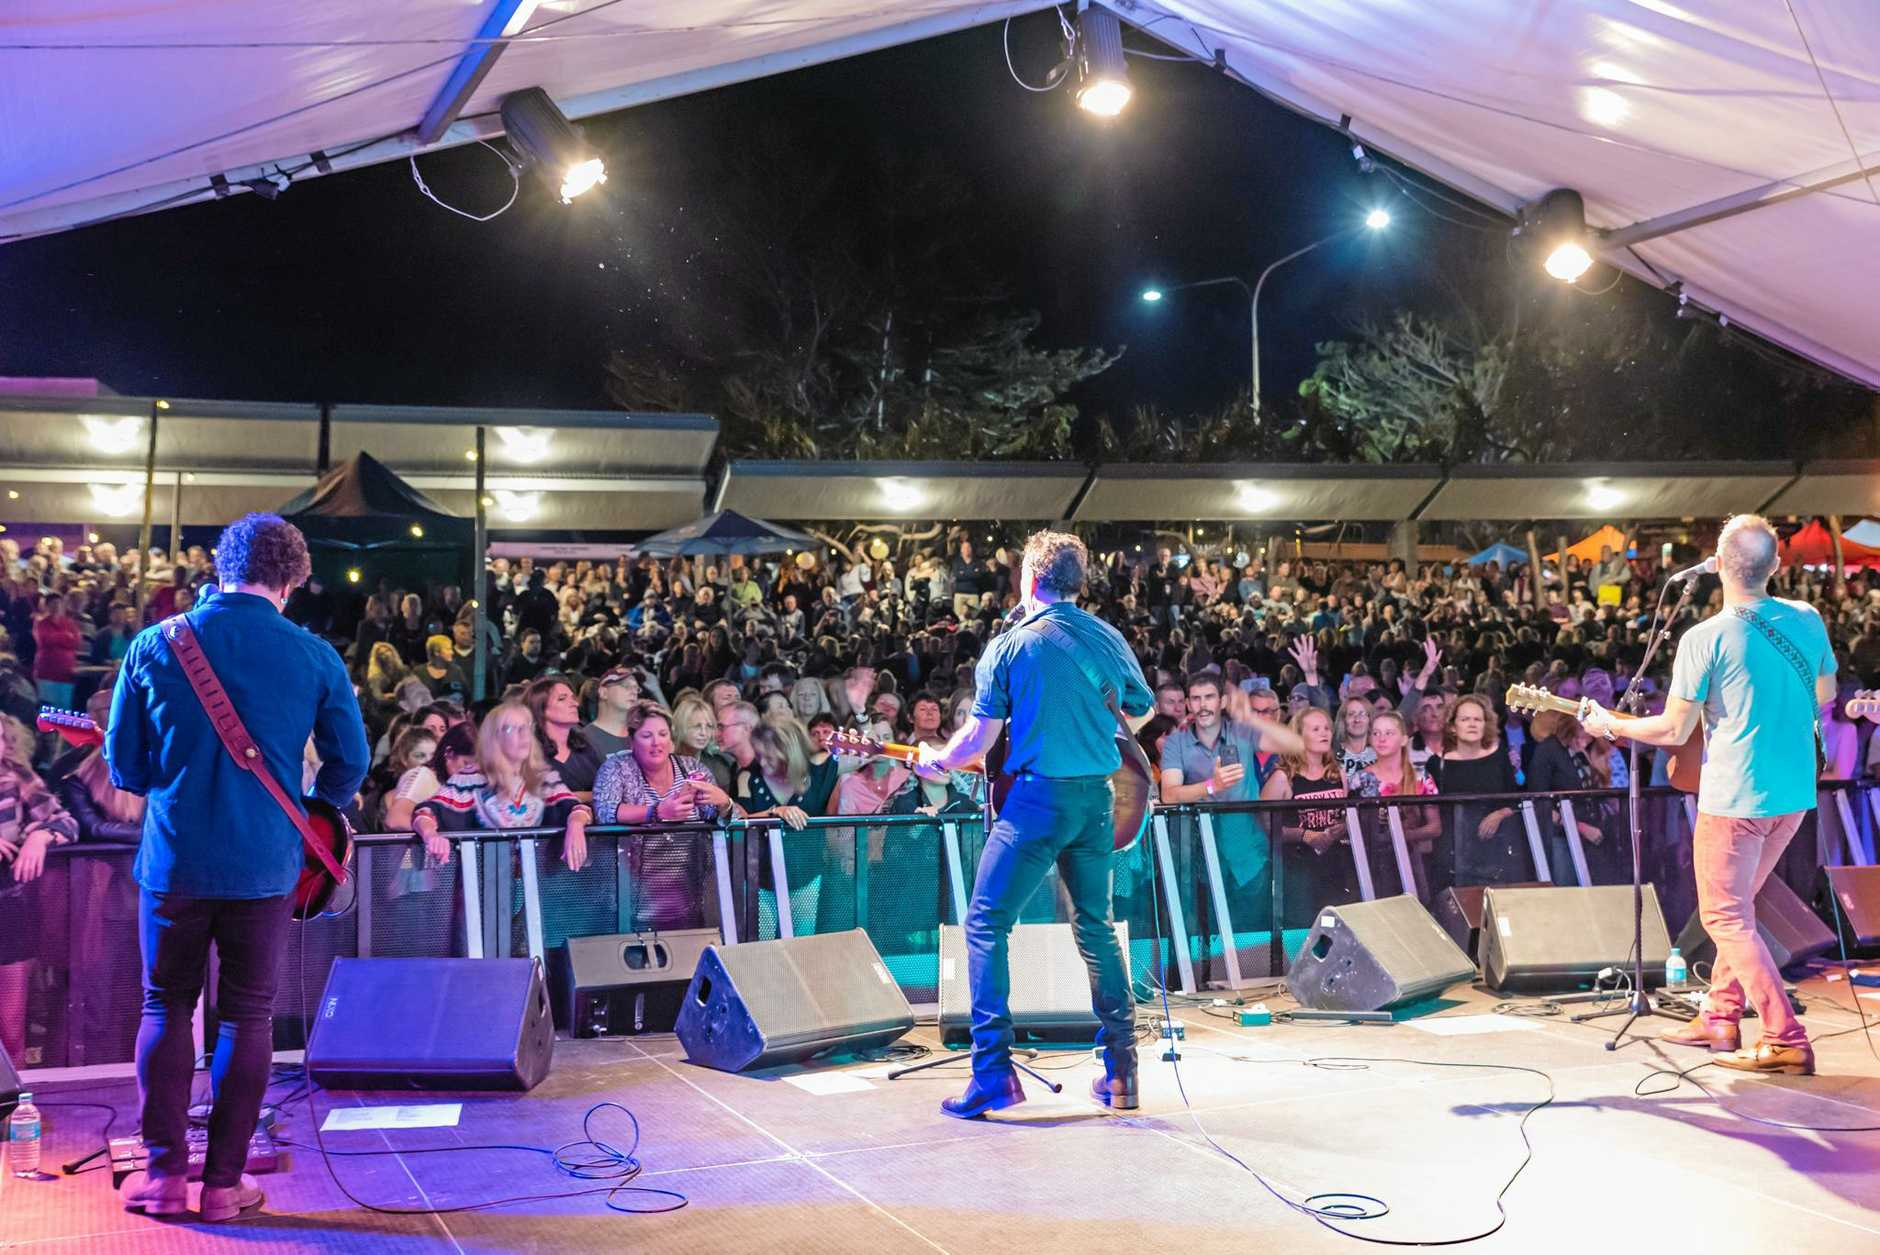 The Village Festival in August featured Aussie music icons Mark Seymour and James Reyne.